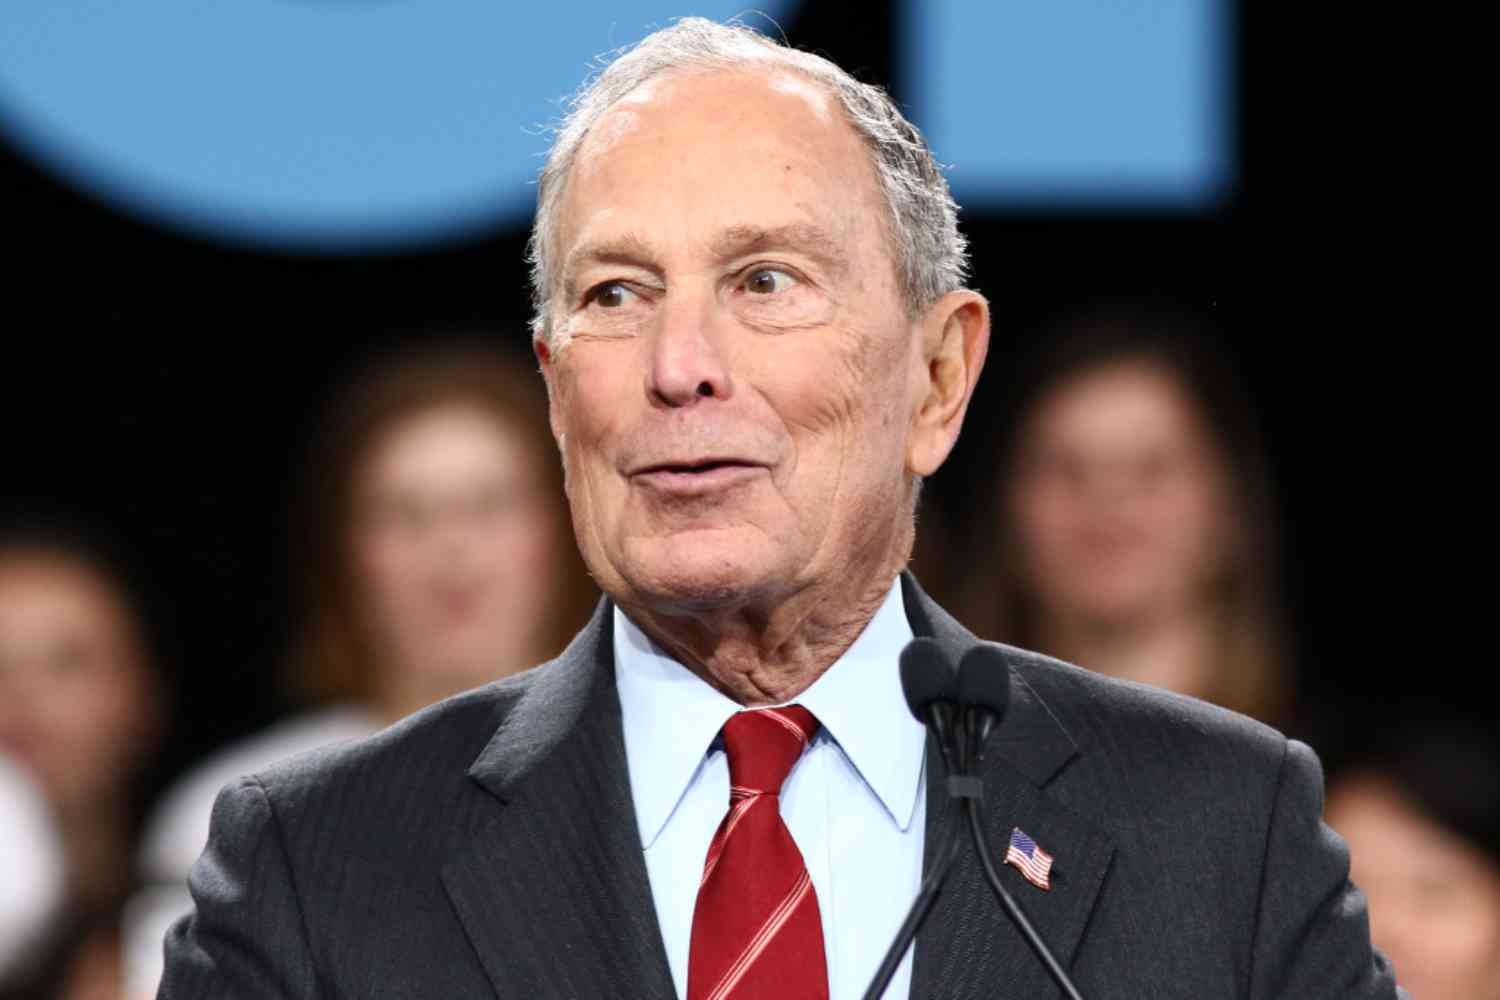 Bloomberg takes shot at Sanders over aggressive supporters